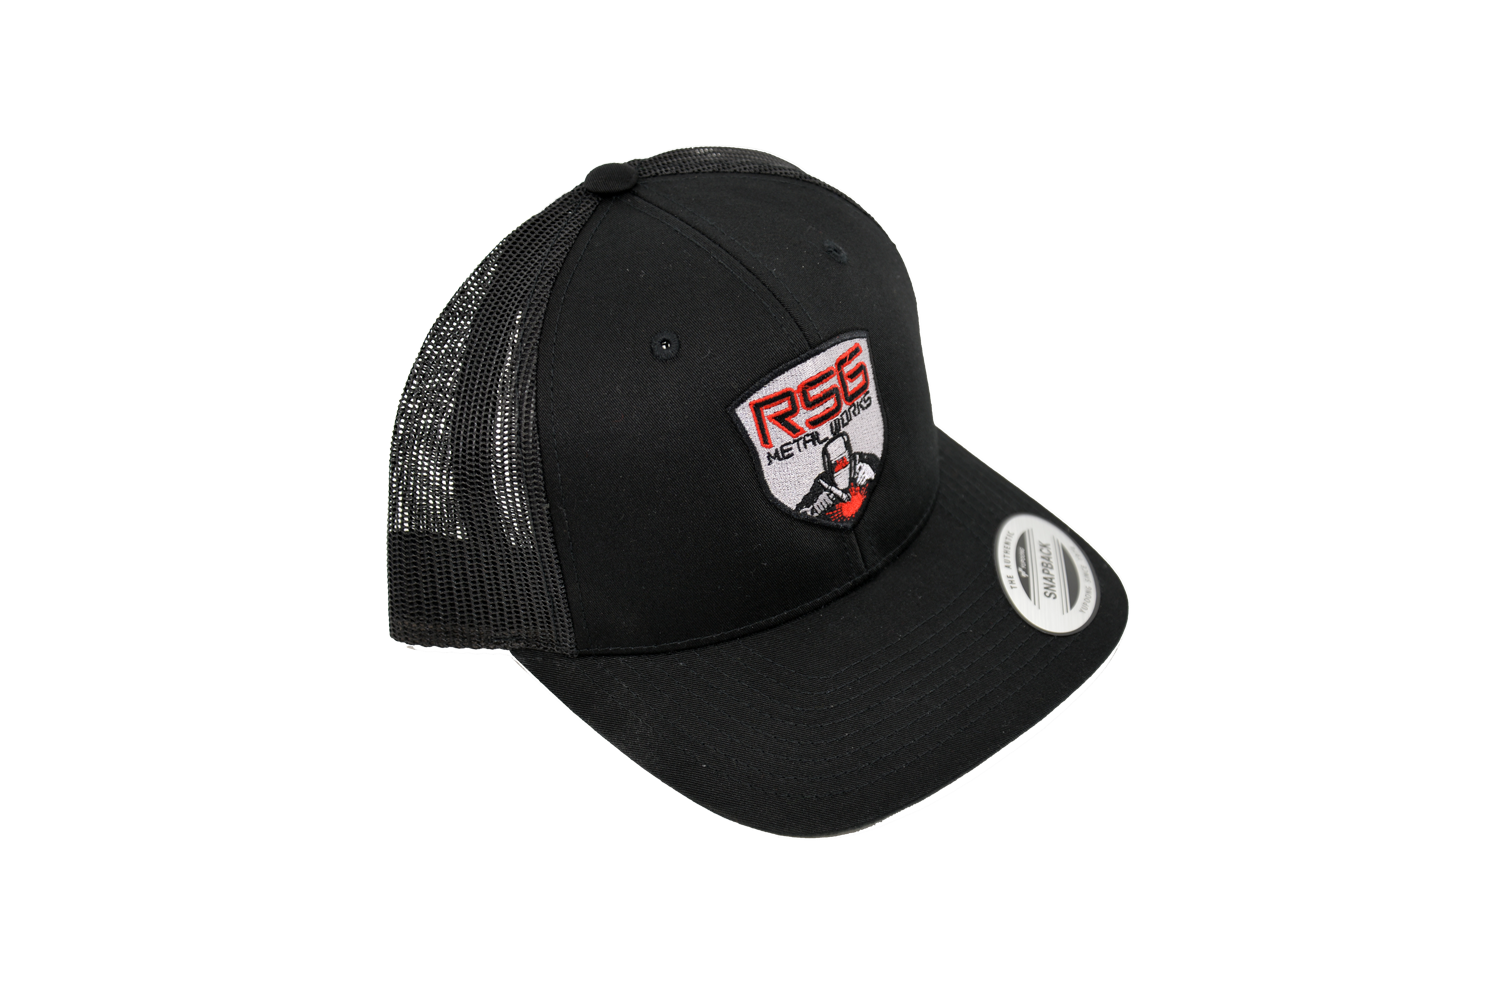 Black RSG Metalworks Trucker Hat